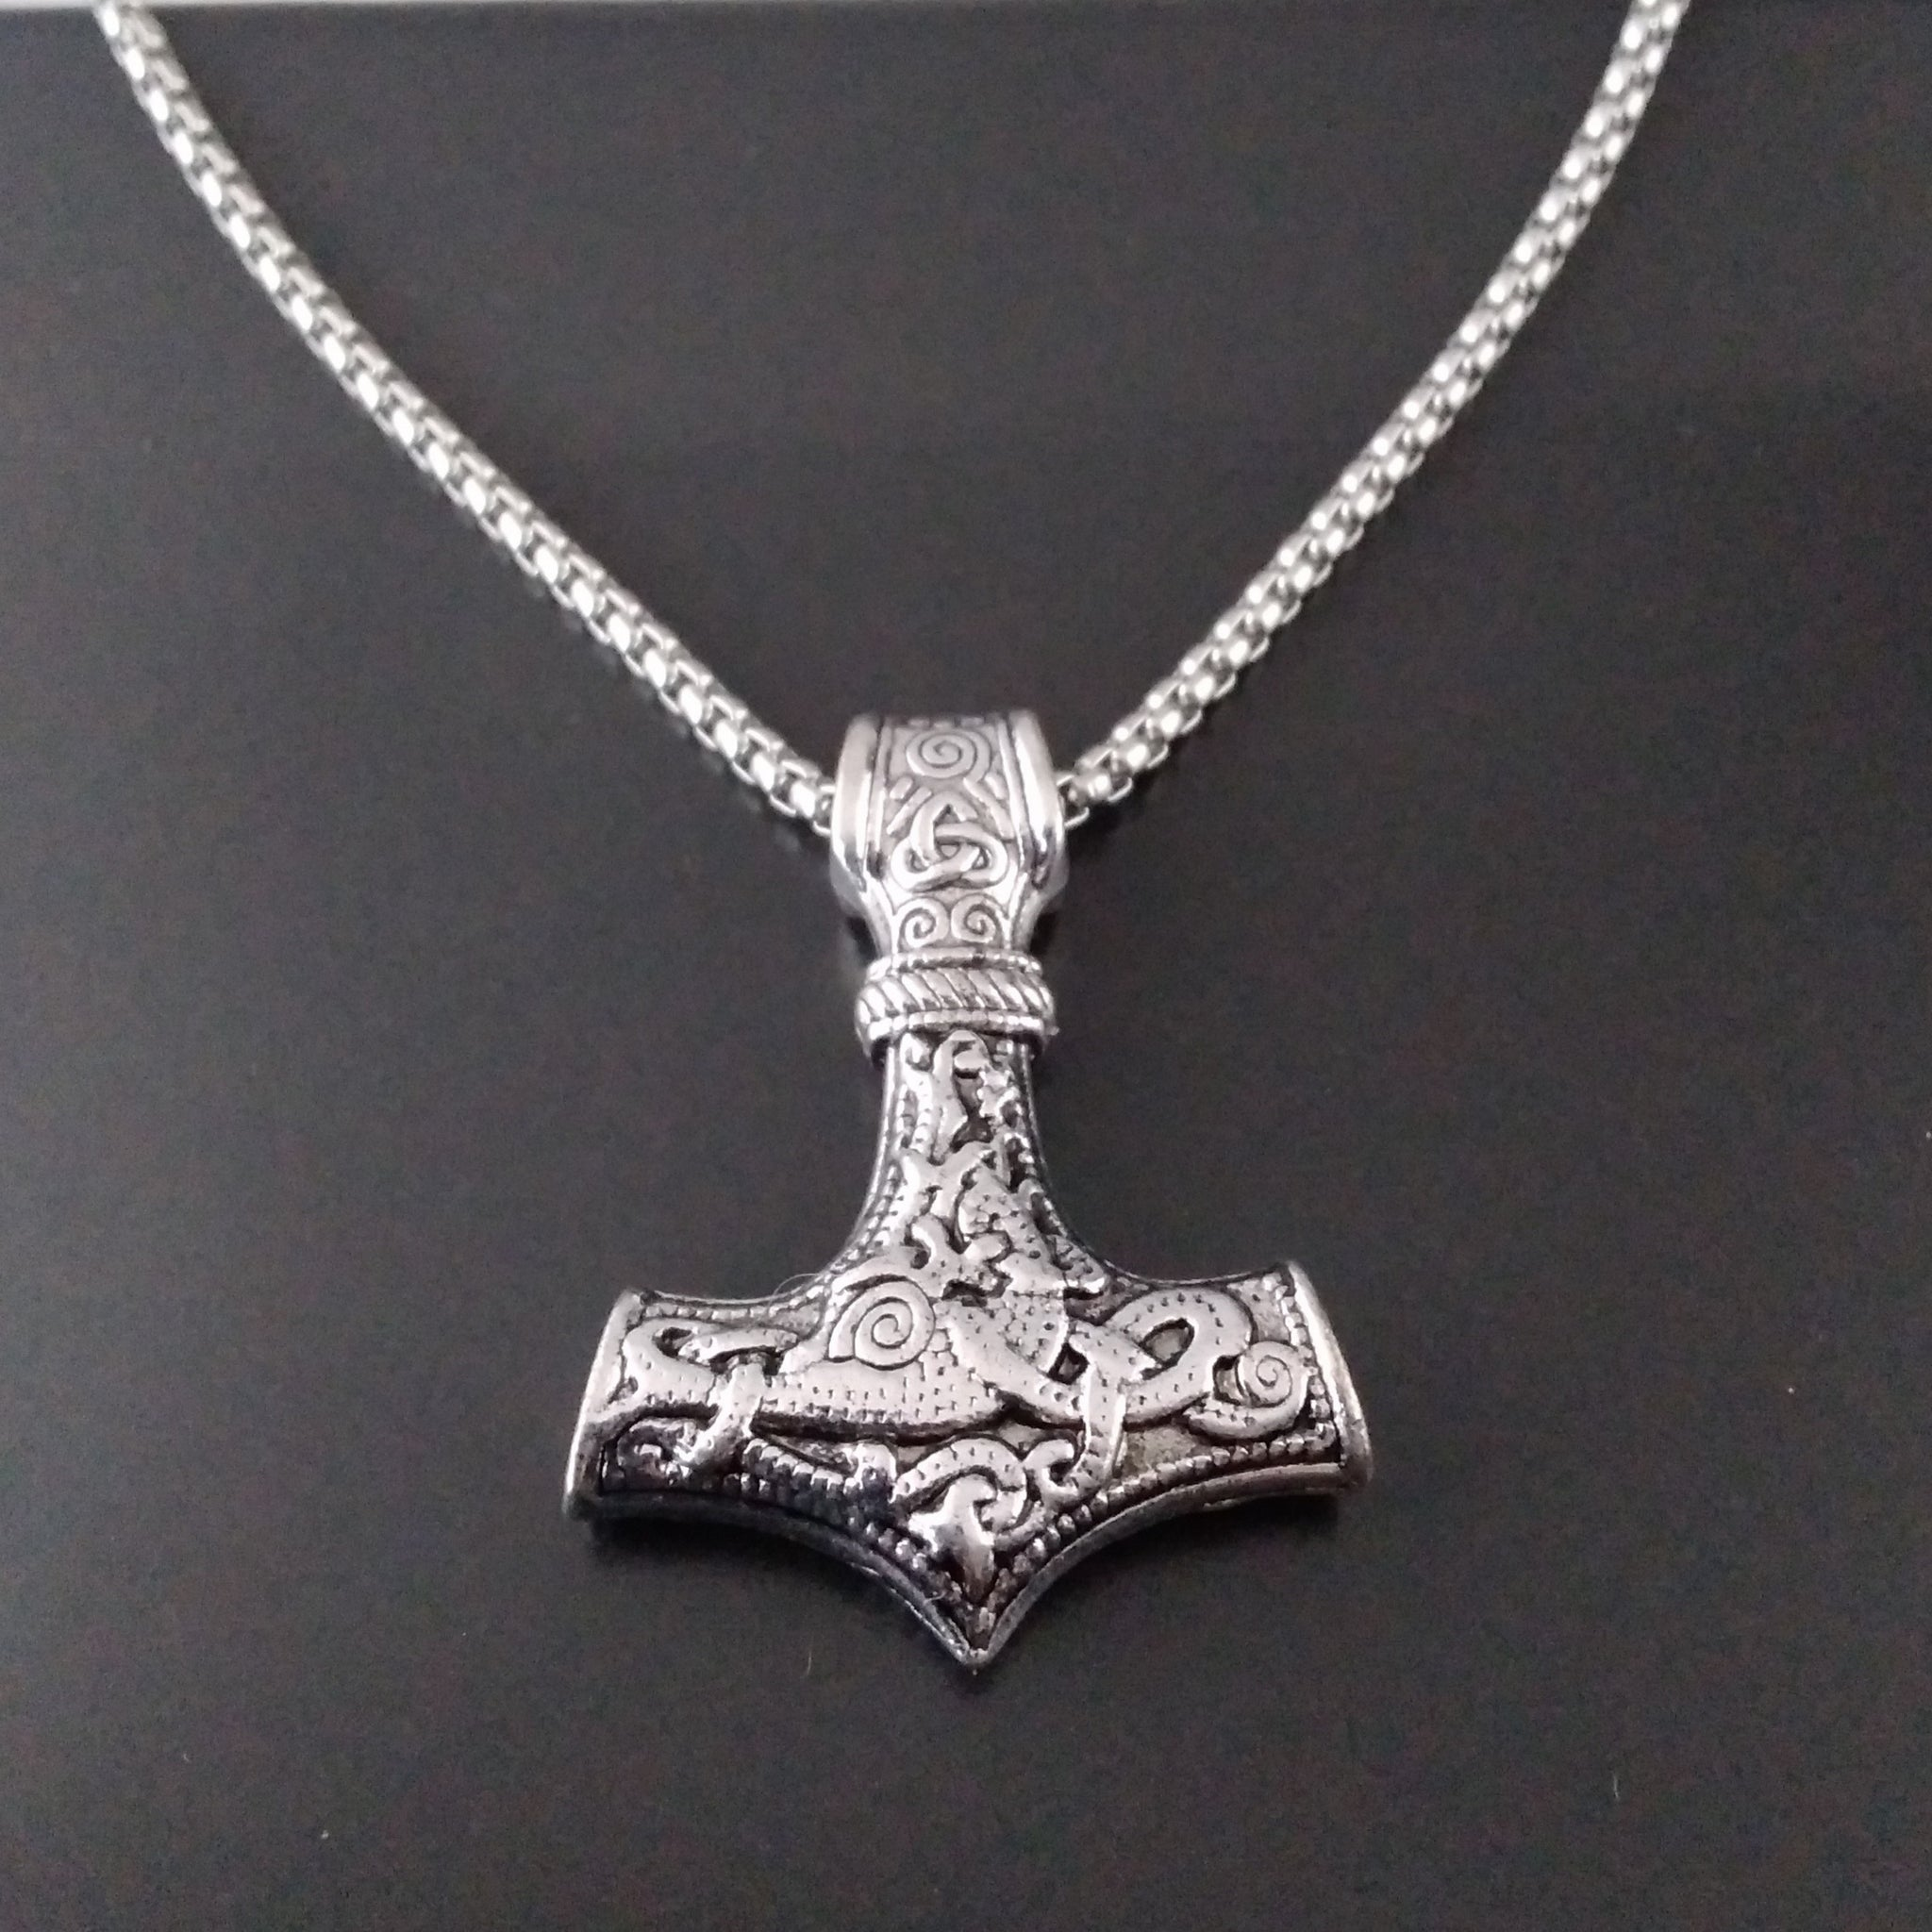 thor's hammer silver necklace chain viking larp norse